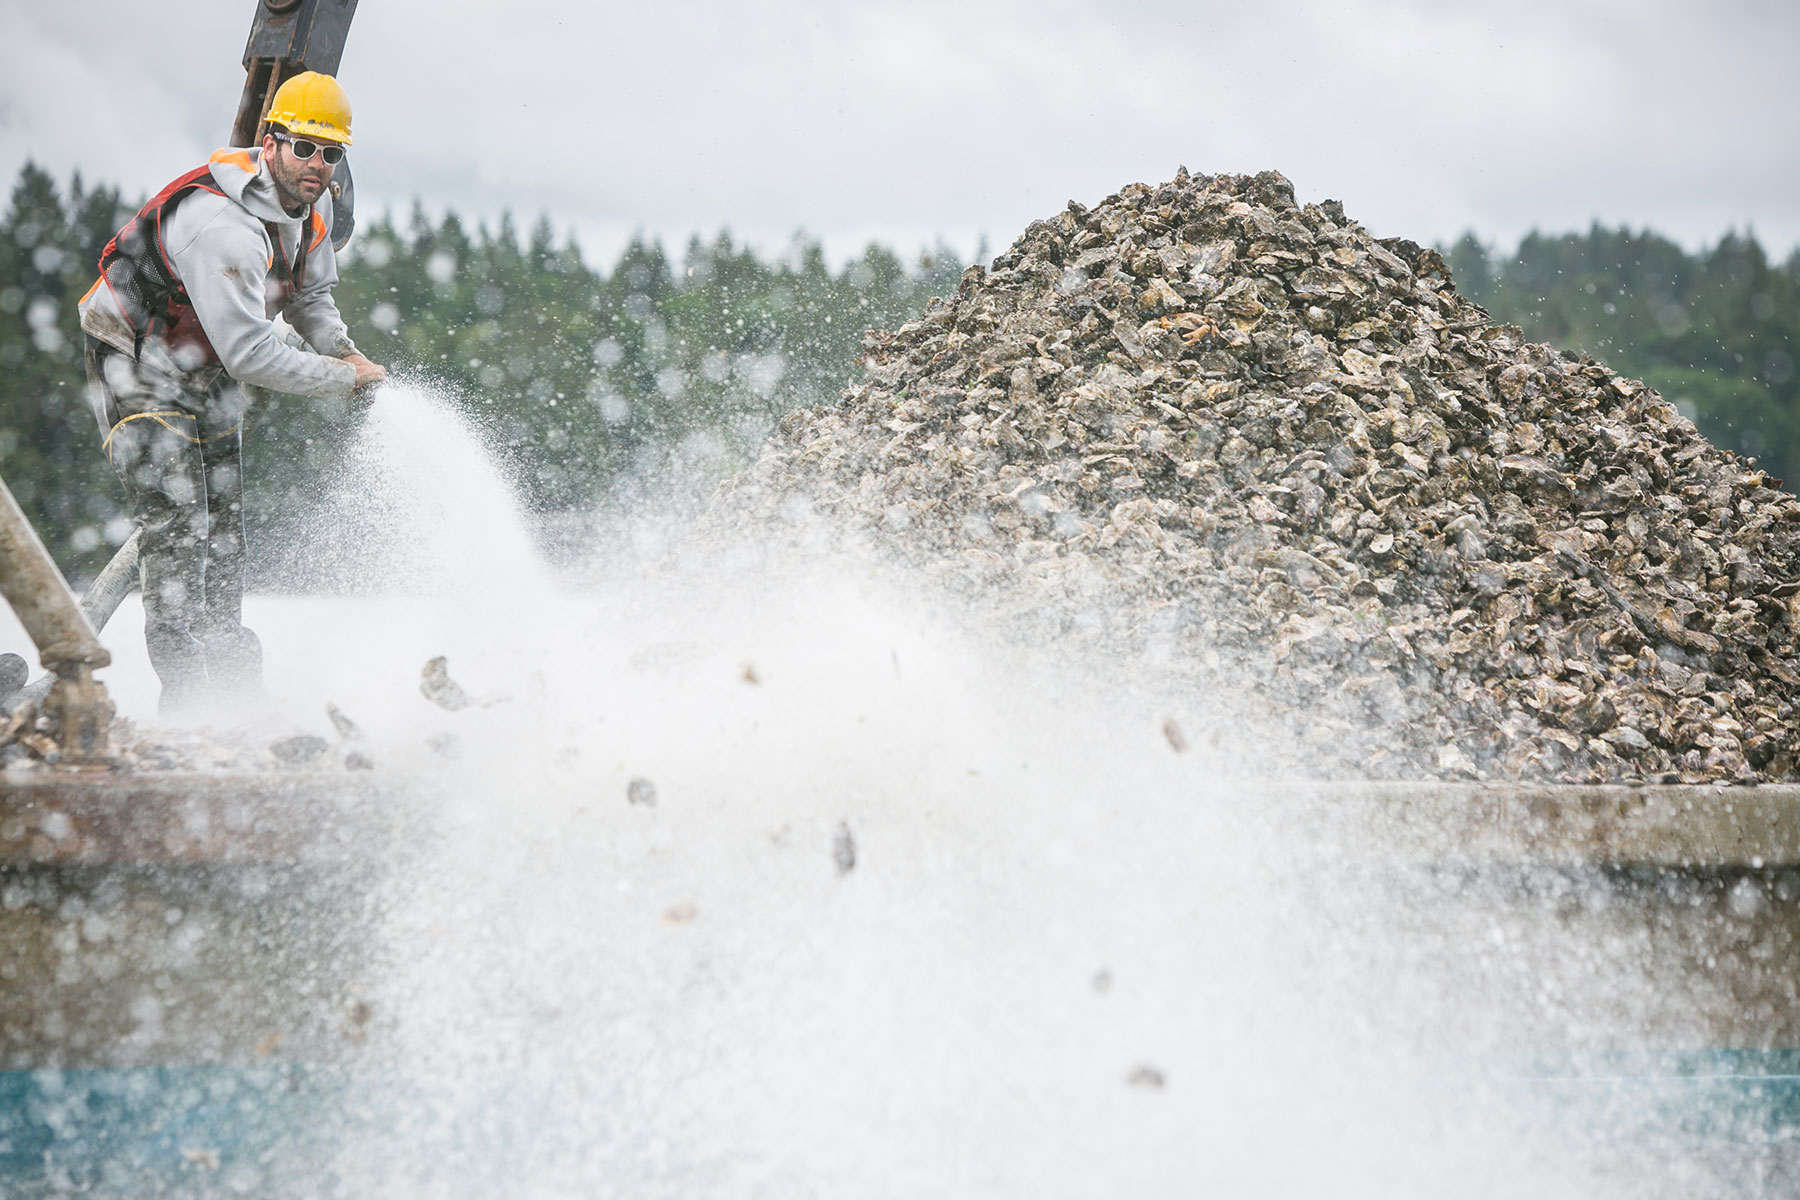 Using a hose, Adam Kravitz transplants oysters from one area to another in Mud Bay near Olympia, Washington, at one of Taylor Shellfish's many farms in Puget Sound.